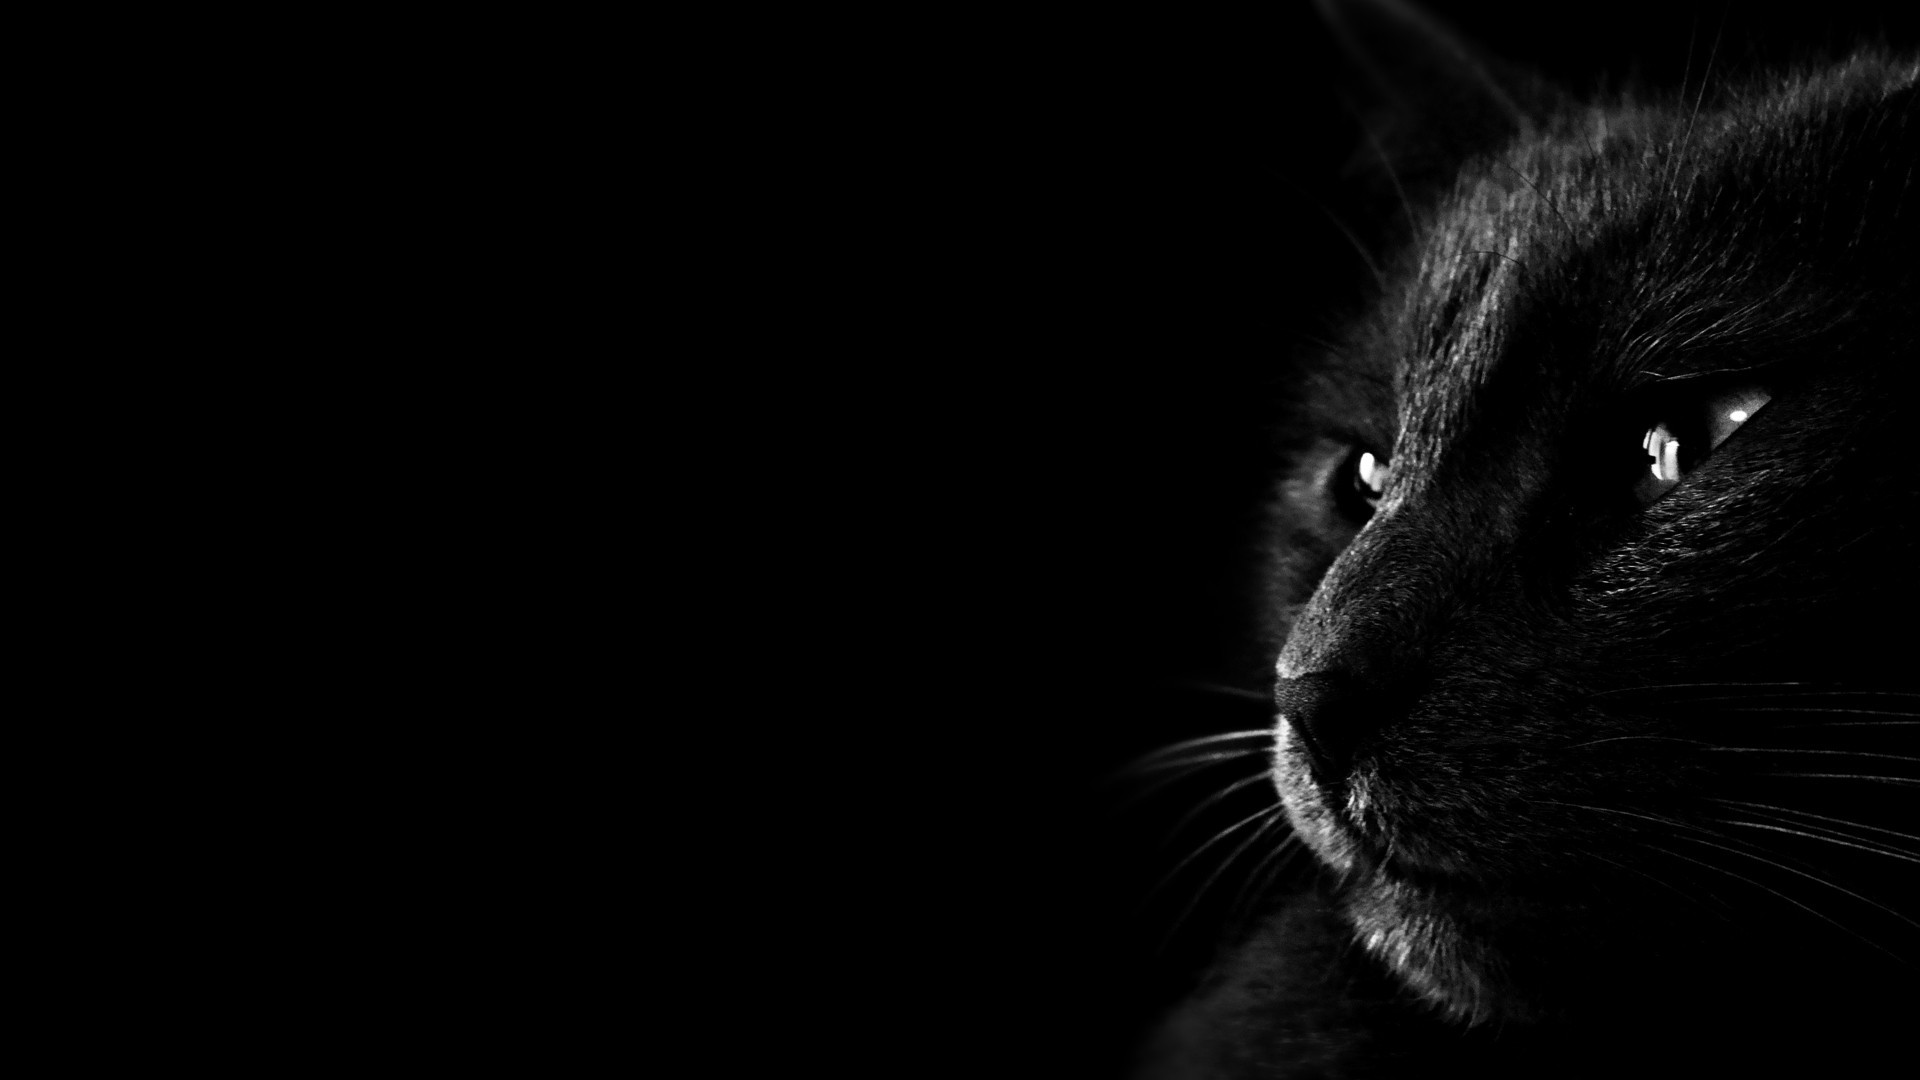 1920x1080 Black-Cat-Wallpaper-3.jpg